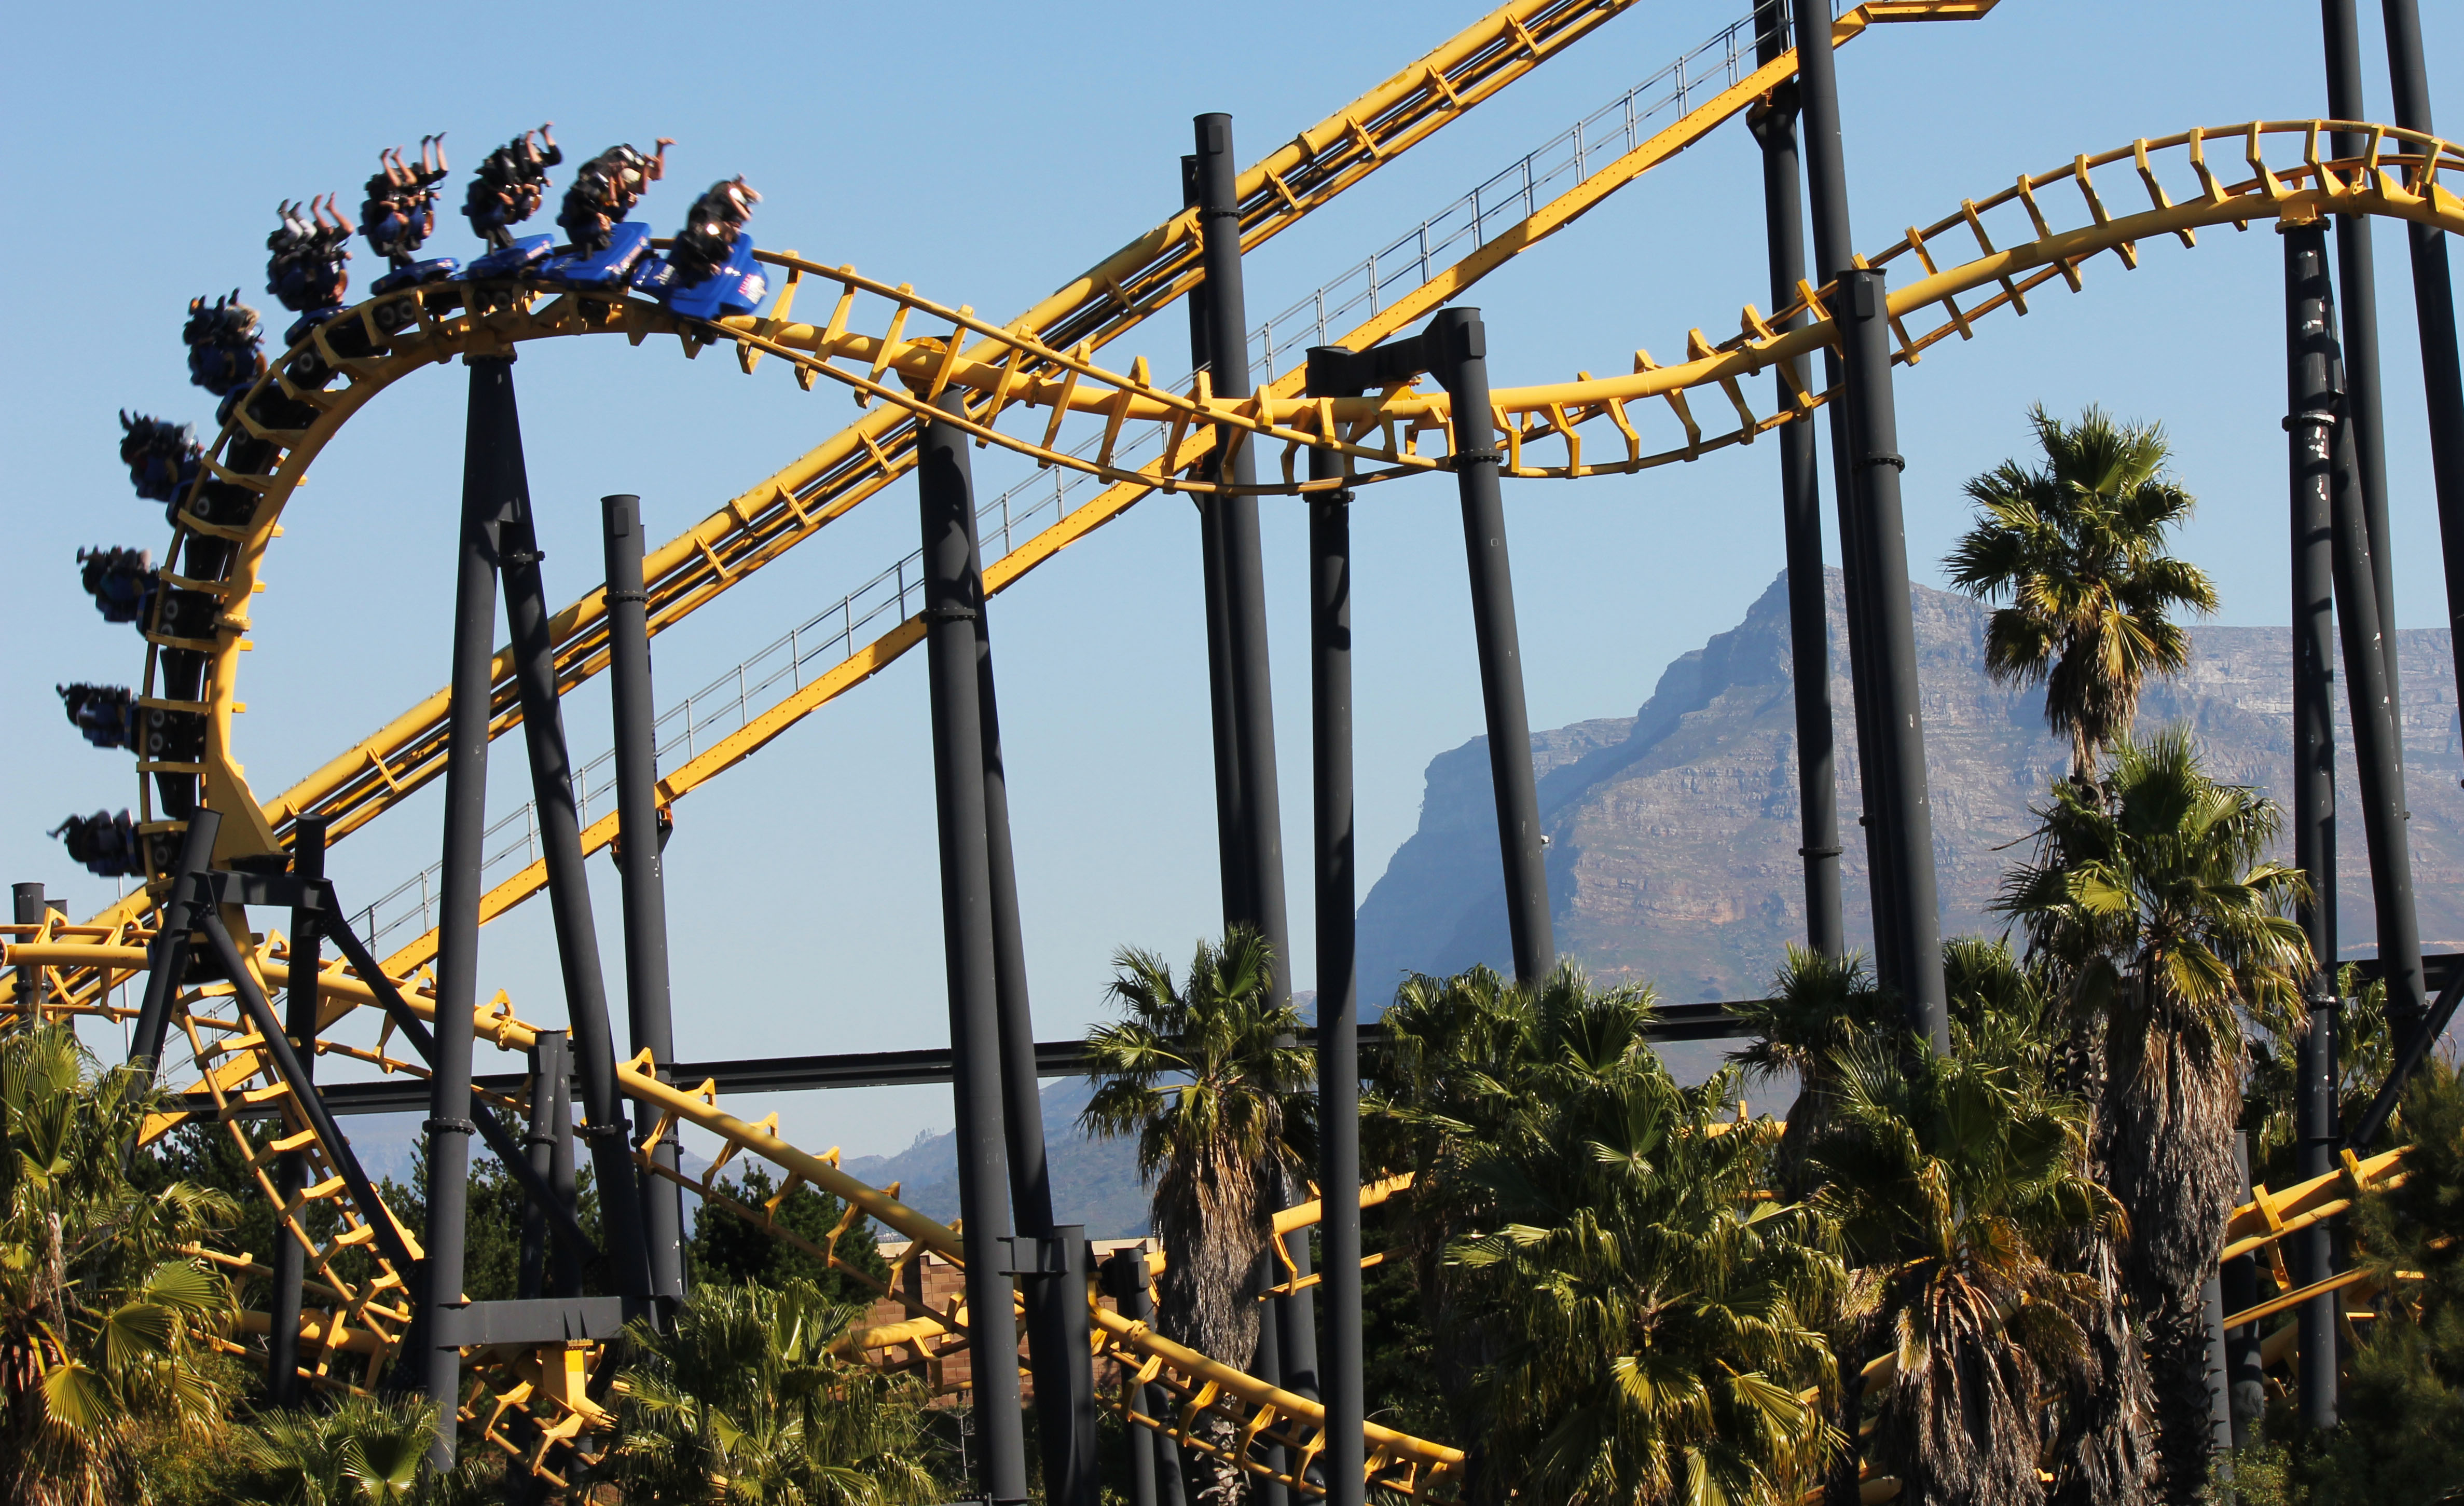 Suspended coaster track shapes, cars and trains